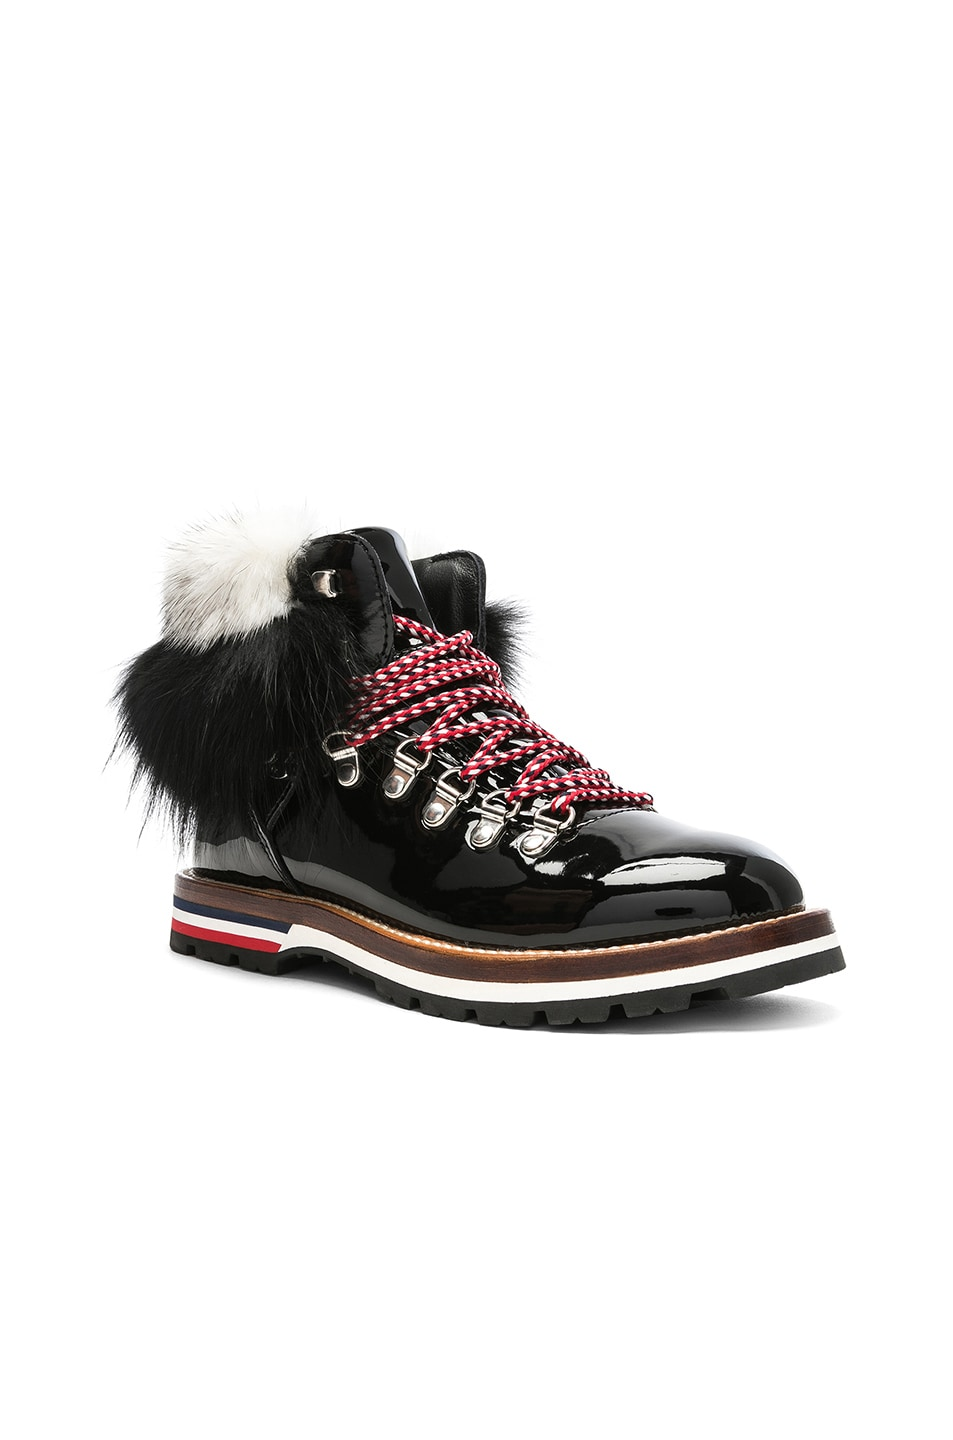 Image 2 of Moncler Patent Leather Solange Scarpa Boots With Mink Fur in Black